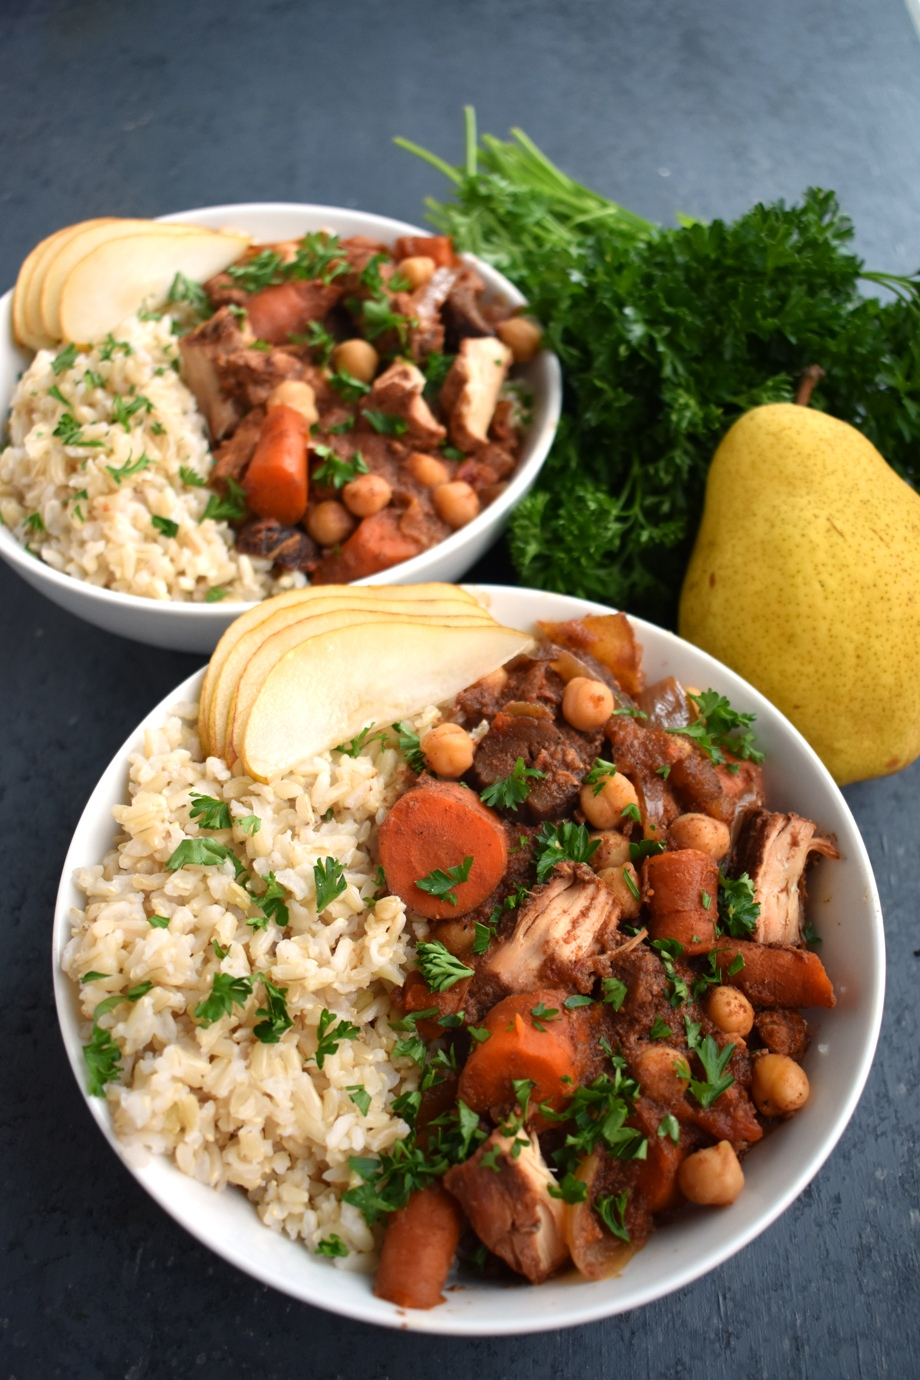 Slow Cooker Moroccan Chicken is loaded with flavor, tender chicken, carrots, chickpeas, pears, Moroccan spices and more for the perfect cozy meal! Serve over brown rice, cauliflower rice or quinoa. www.nutritionistreviews.com #healthy #cleaneating #dinner #slowcooker #chicken #crockpot